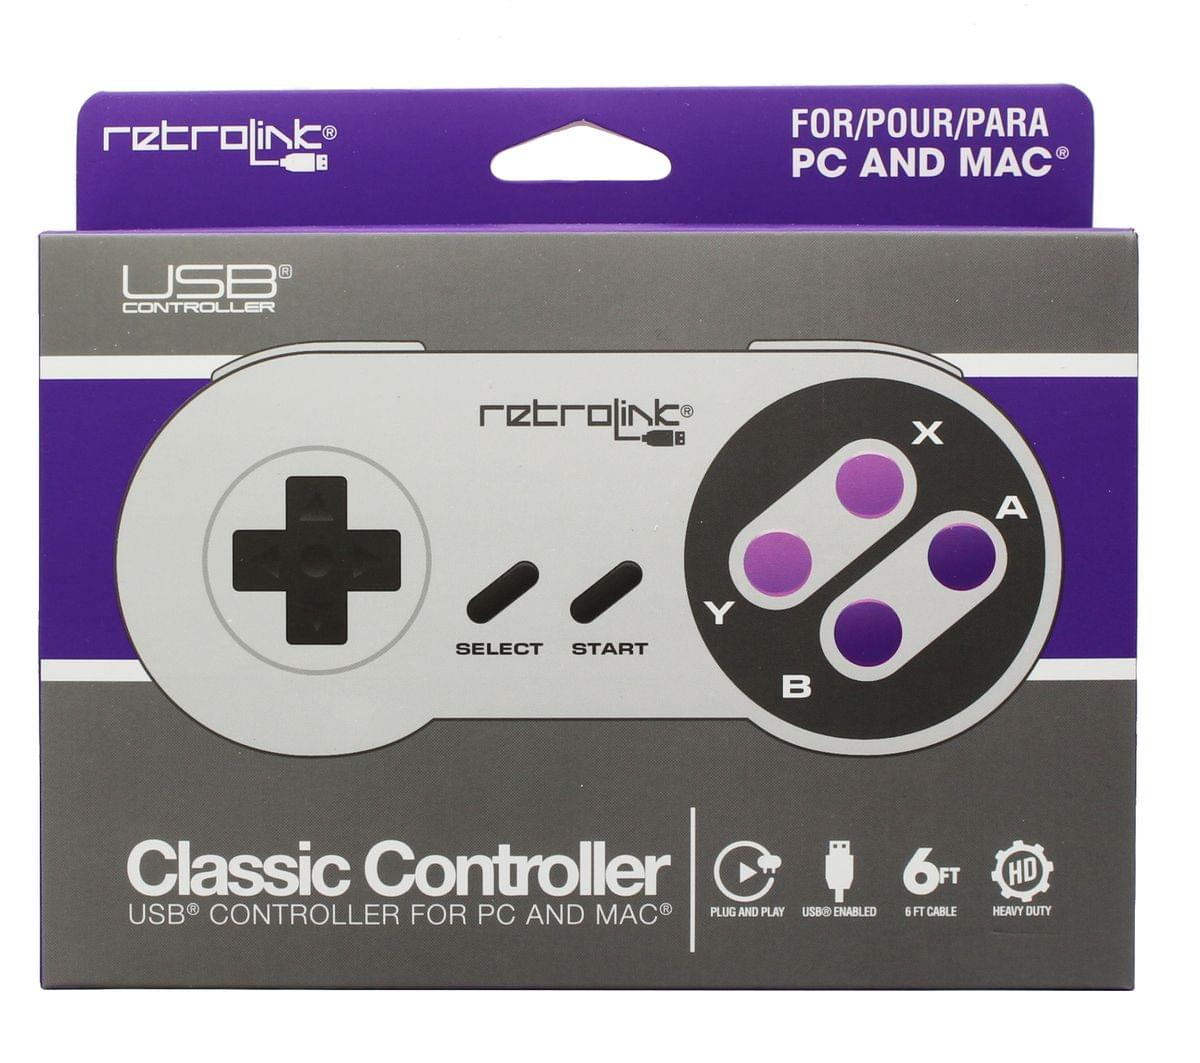 Retrolink USB Super Classic Controller